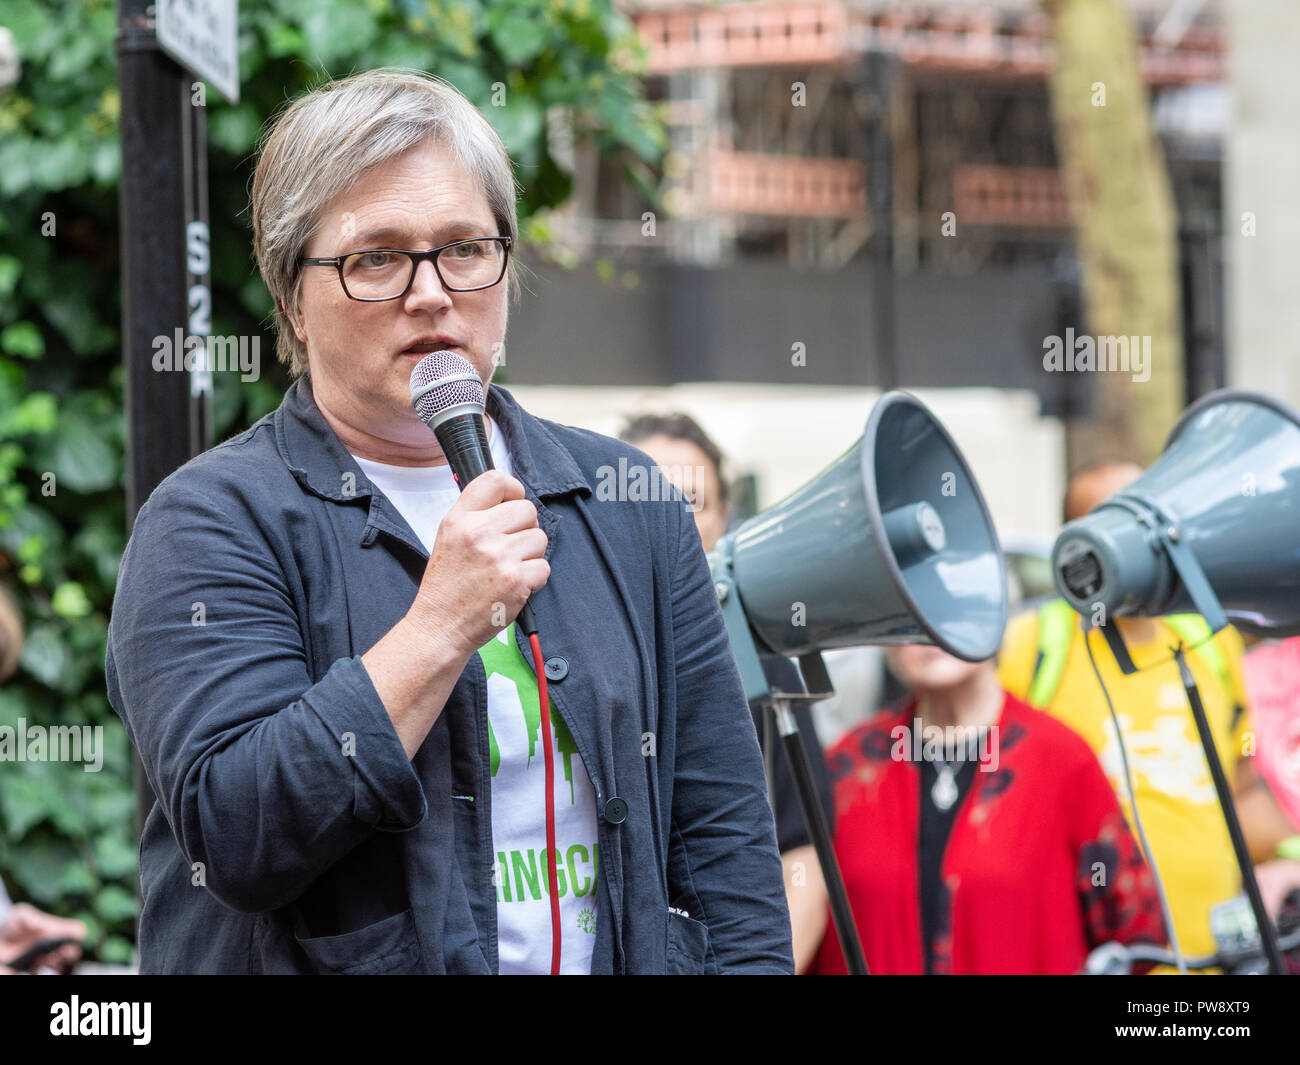 London, England, UK - October 13, 2018: Caroline Russell, Green Party Member of the London Assembly and national transport spokesperson, speaks at the 'Pedal On Parliament' event organised by Stop Killing Cyclists to call for greater investment in safe cycling infrastructure. Credit: Joe Dunckley/Alamy Live News - Stock Image